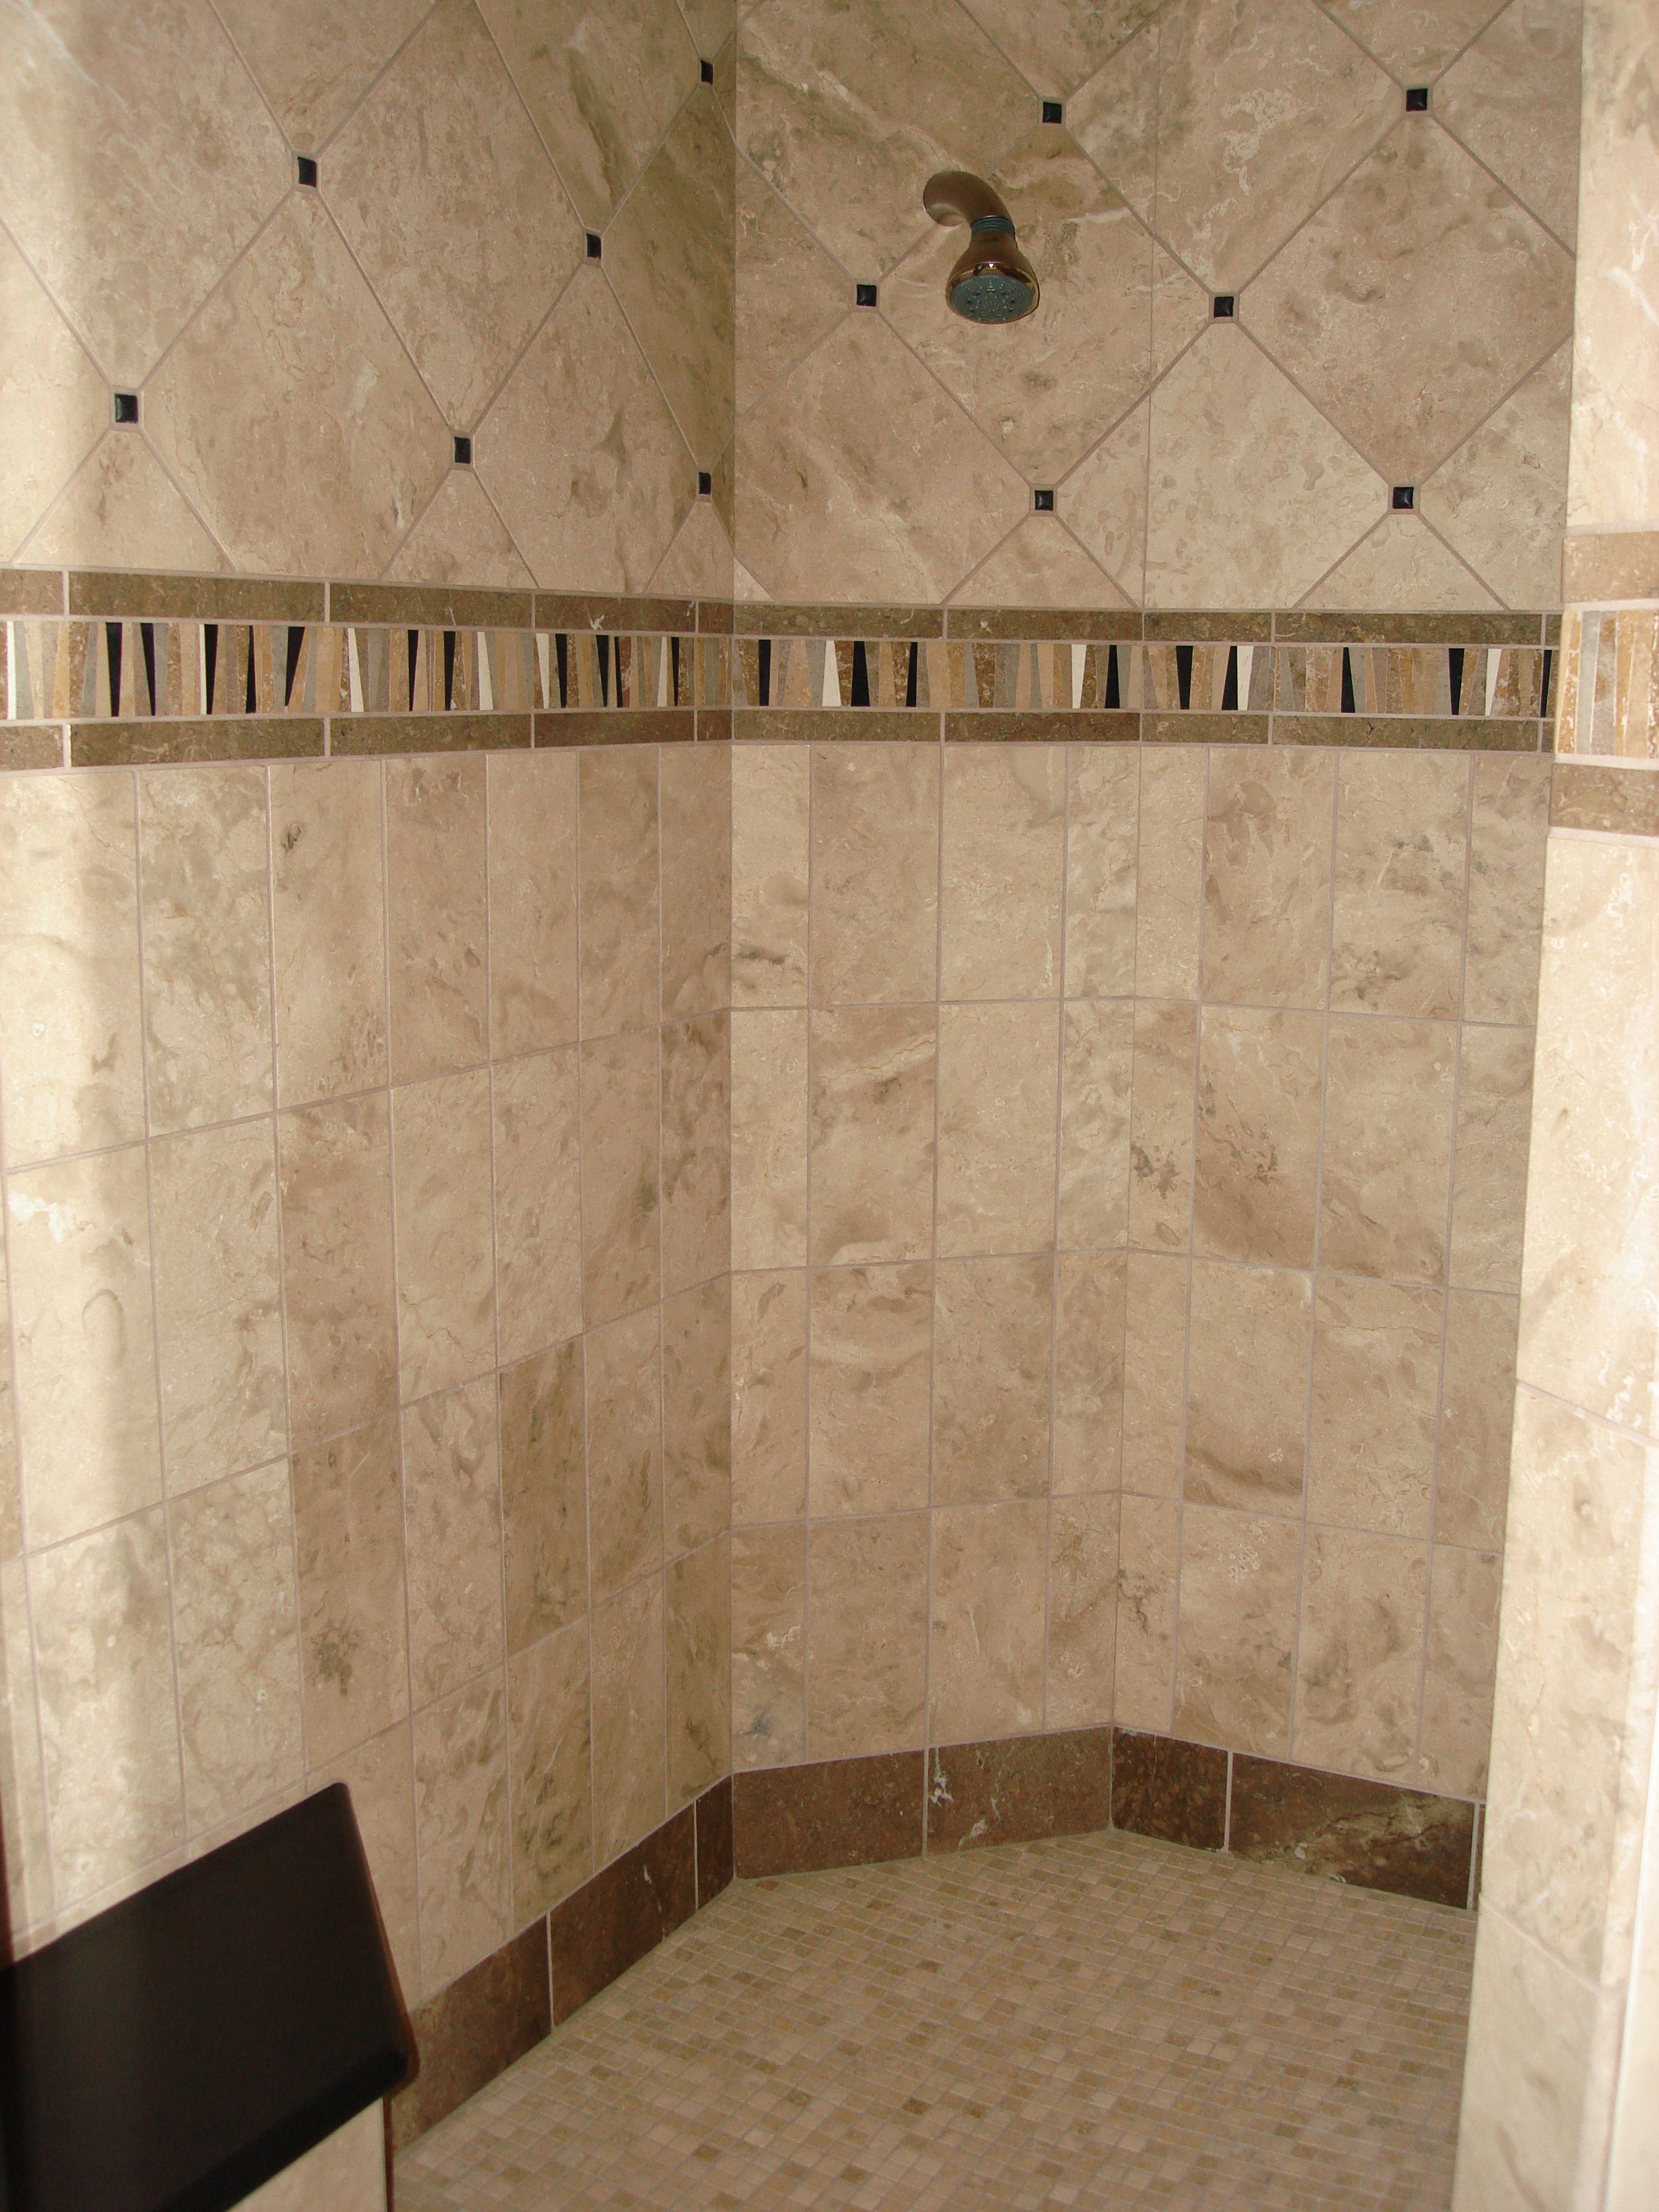 pictures of ceramic tile floors photos. bathroom wall tile designs